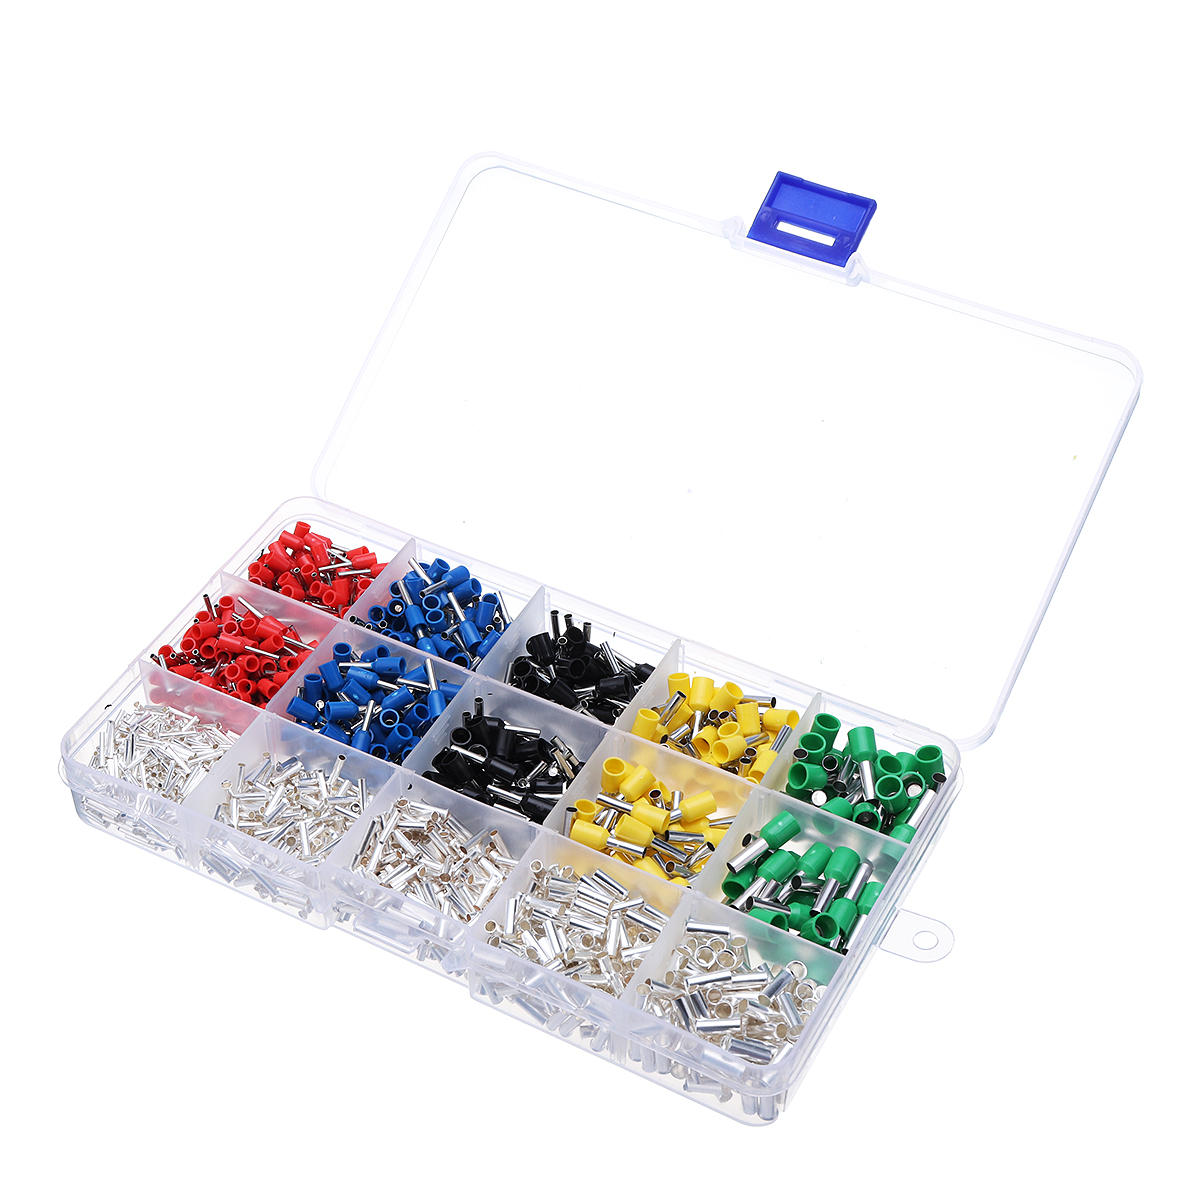 1300Pcs Assorted Crimp Spade Terminal Insulated Electrical Wire Connector Terminal Set - 11